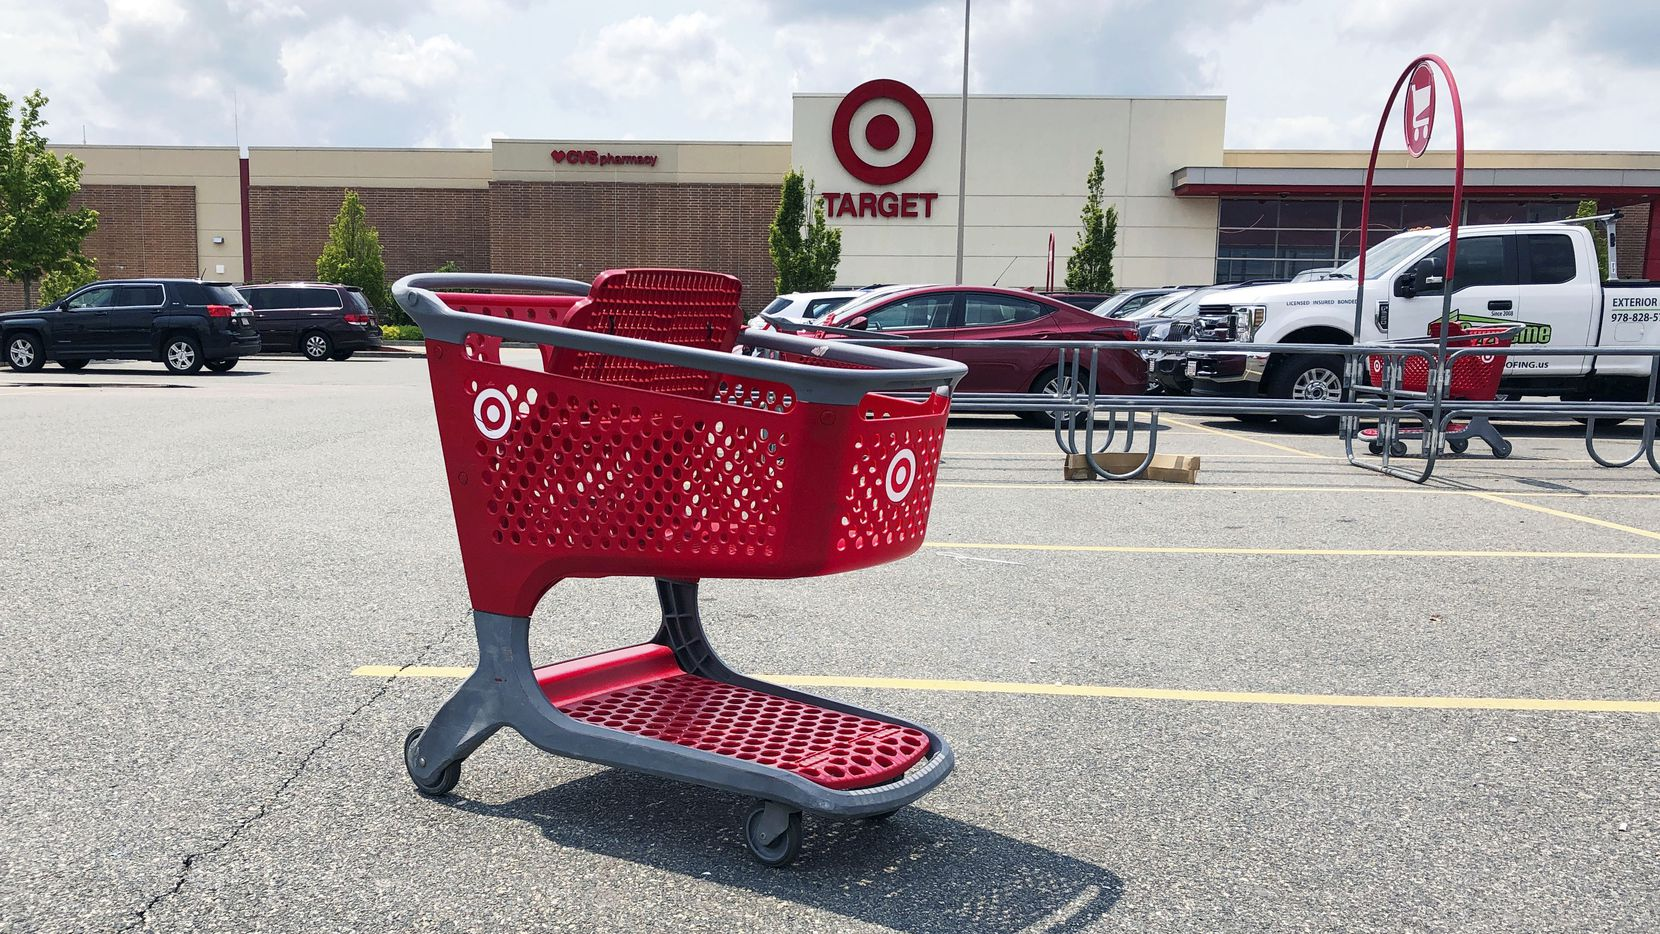 Una tienda de target en Marlborough, Massachussets.